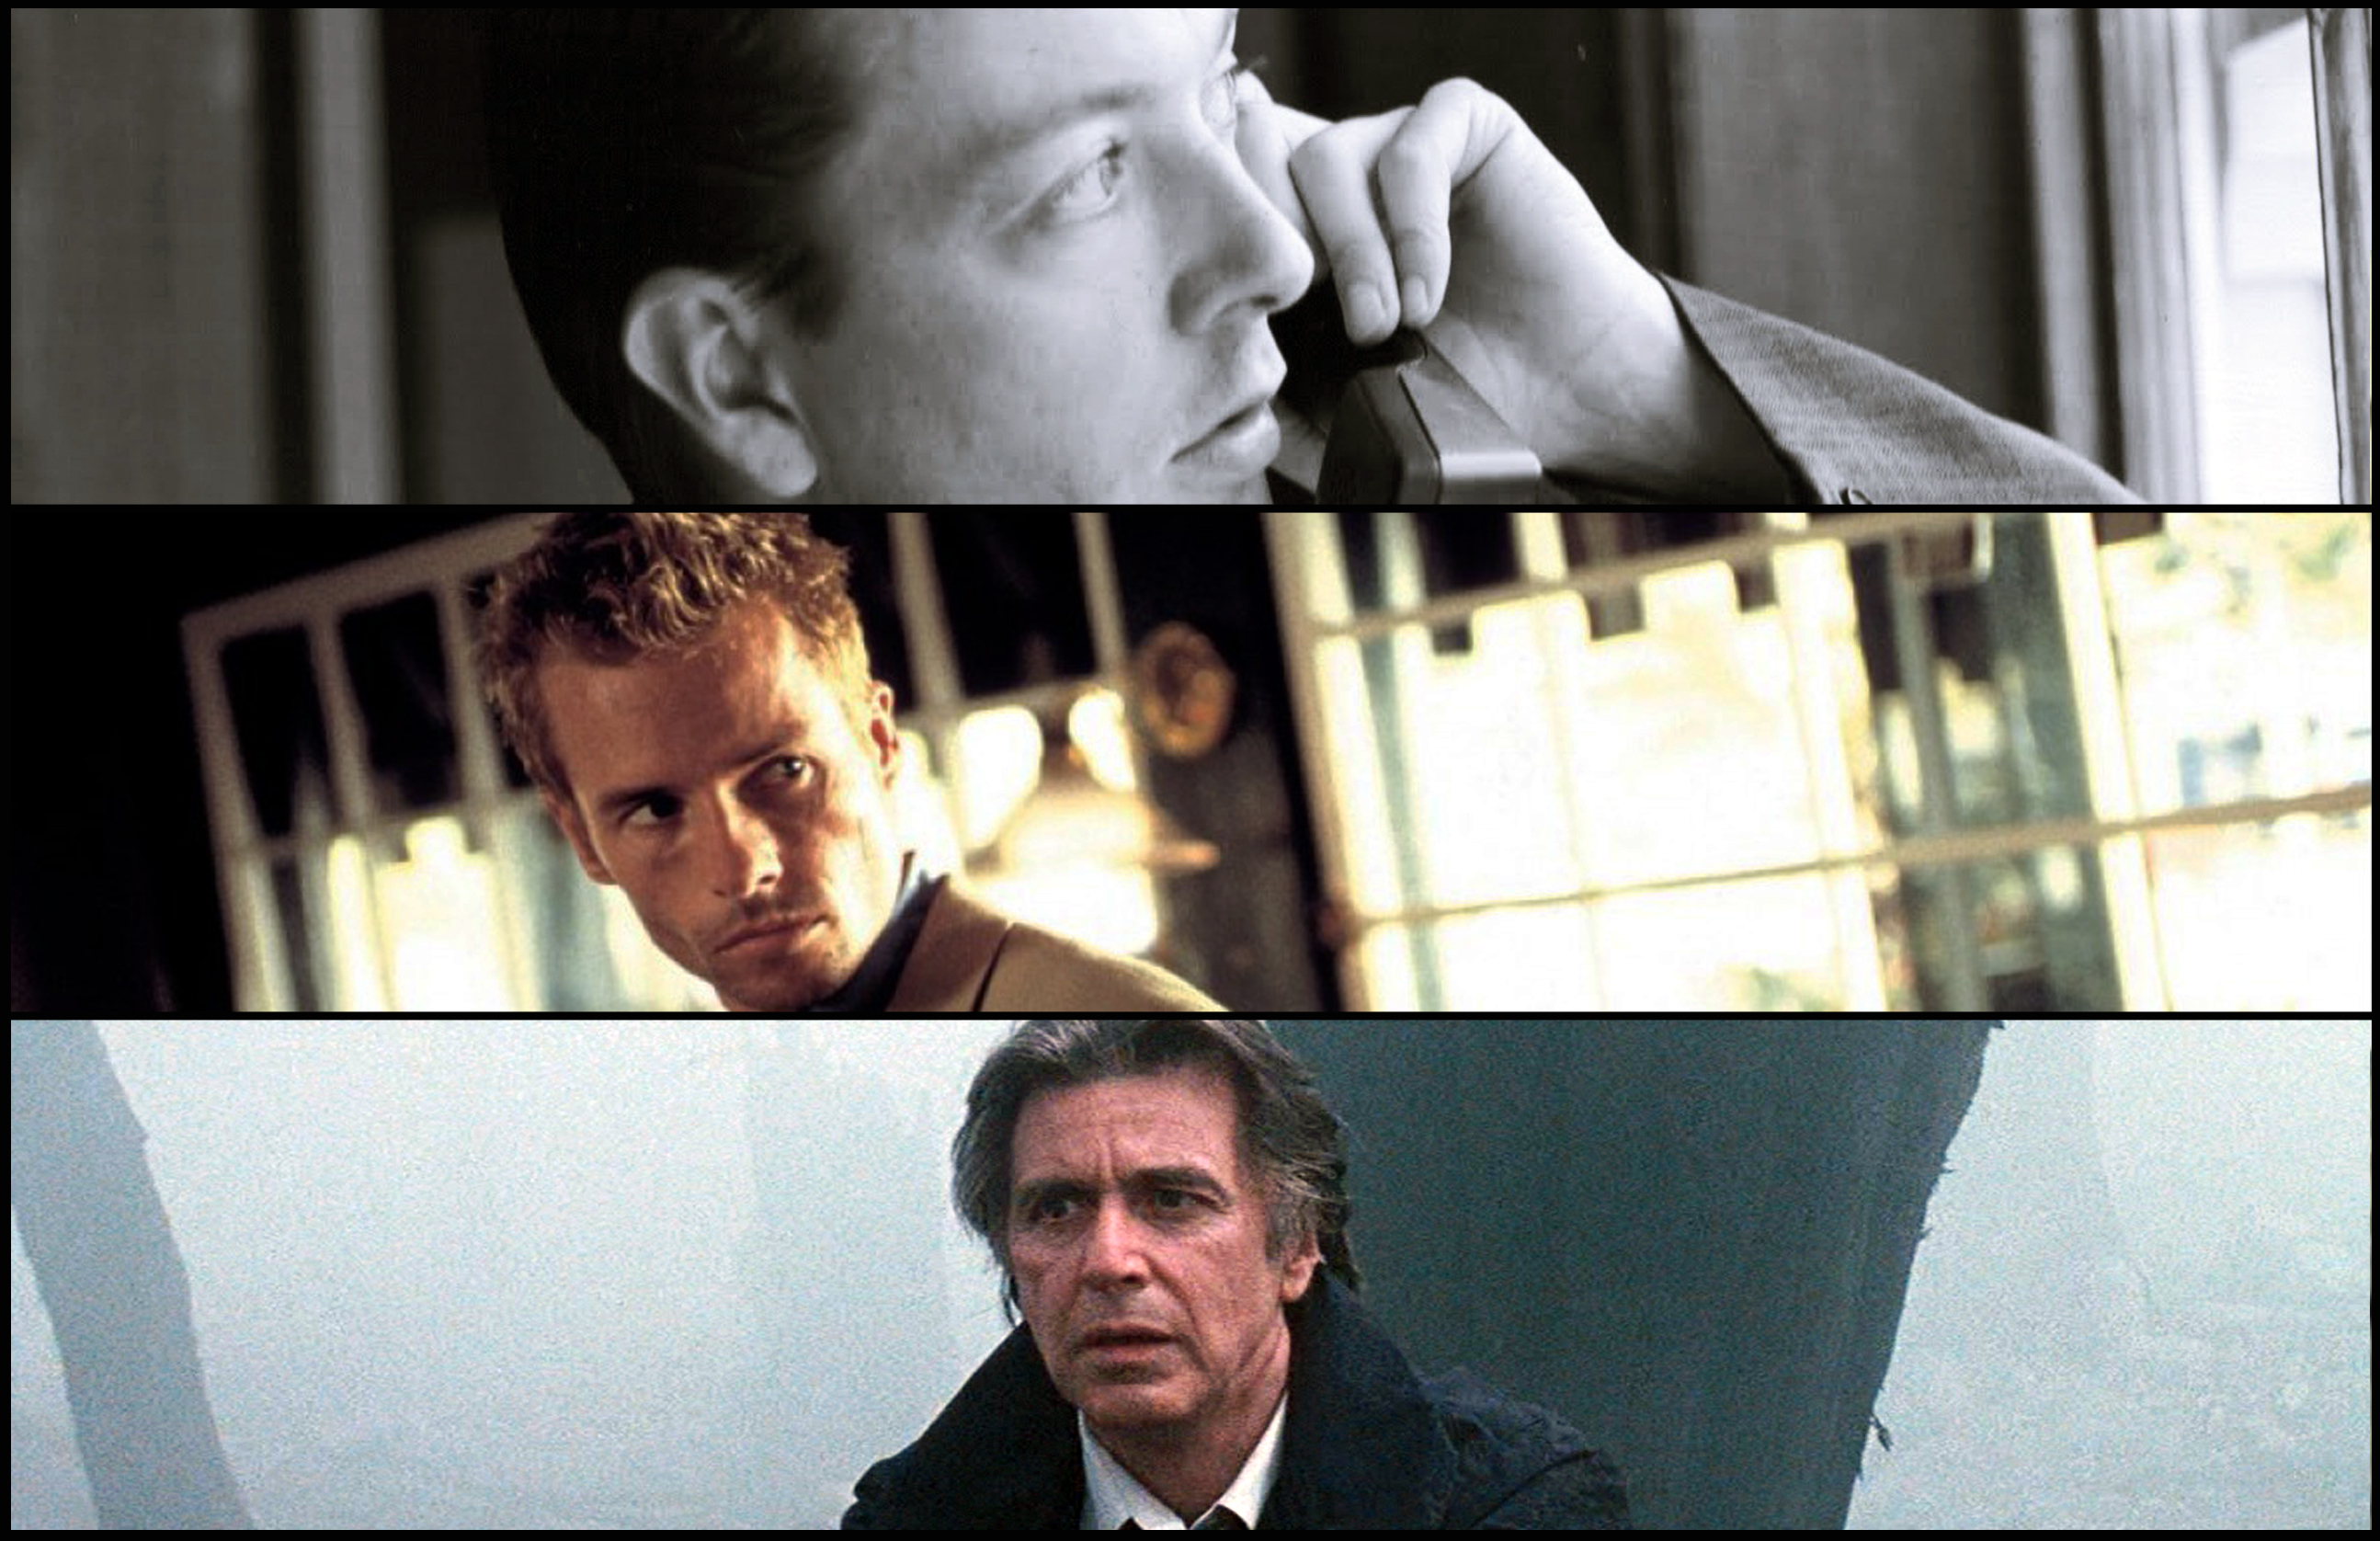 an analysis of the metaphorical movie memento by christopher nolan O fully appreciate the films of christopher nolan following and nolan's second film, memento as a preface to the actual analysis of nolan's films.